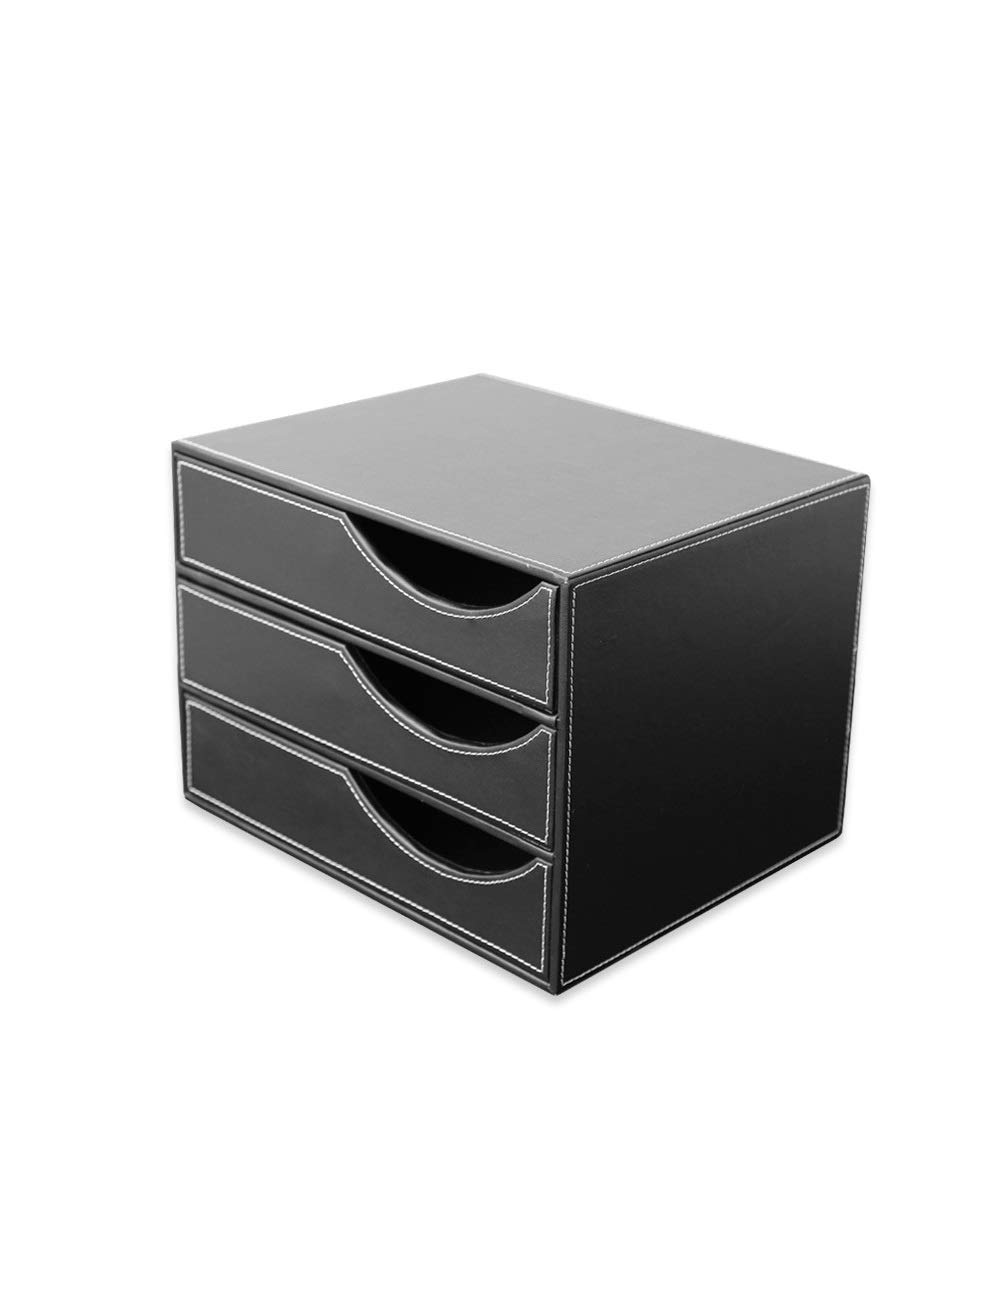 File Cabinets Office Desktop Drawer Type Stationery Cabinet 3 Layers A4 Cortex Data Cabinet Storage Box Storage Home Office Furniture (Color : A) by File Cabinets